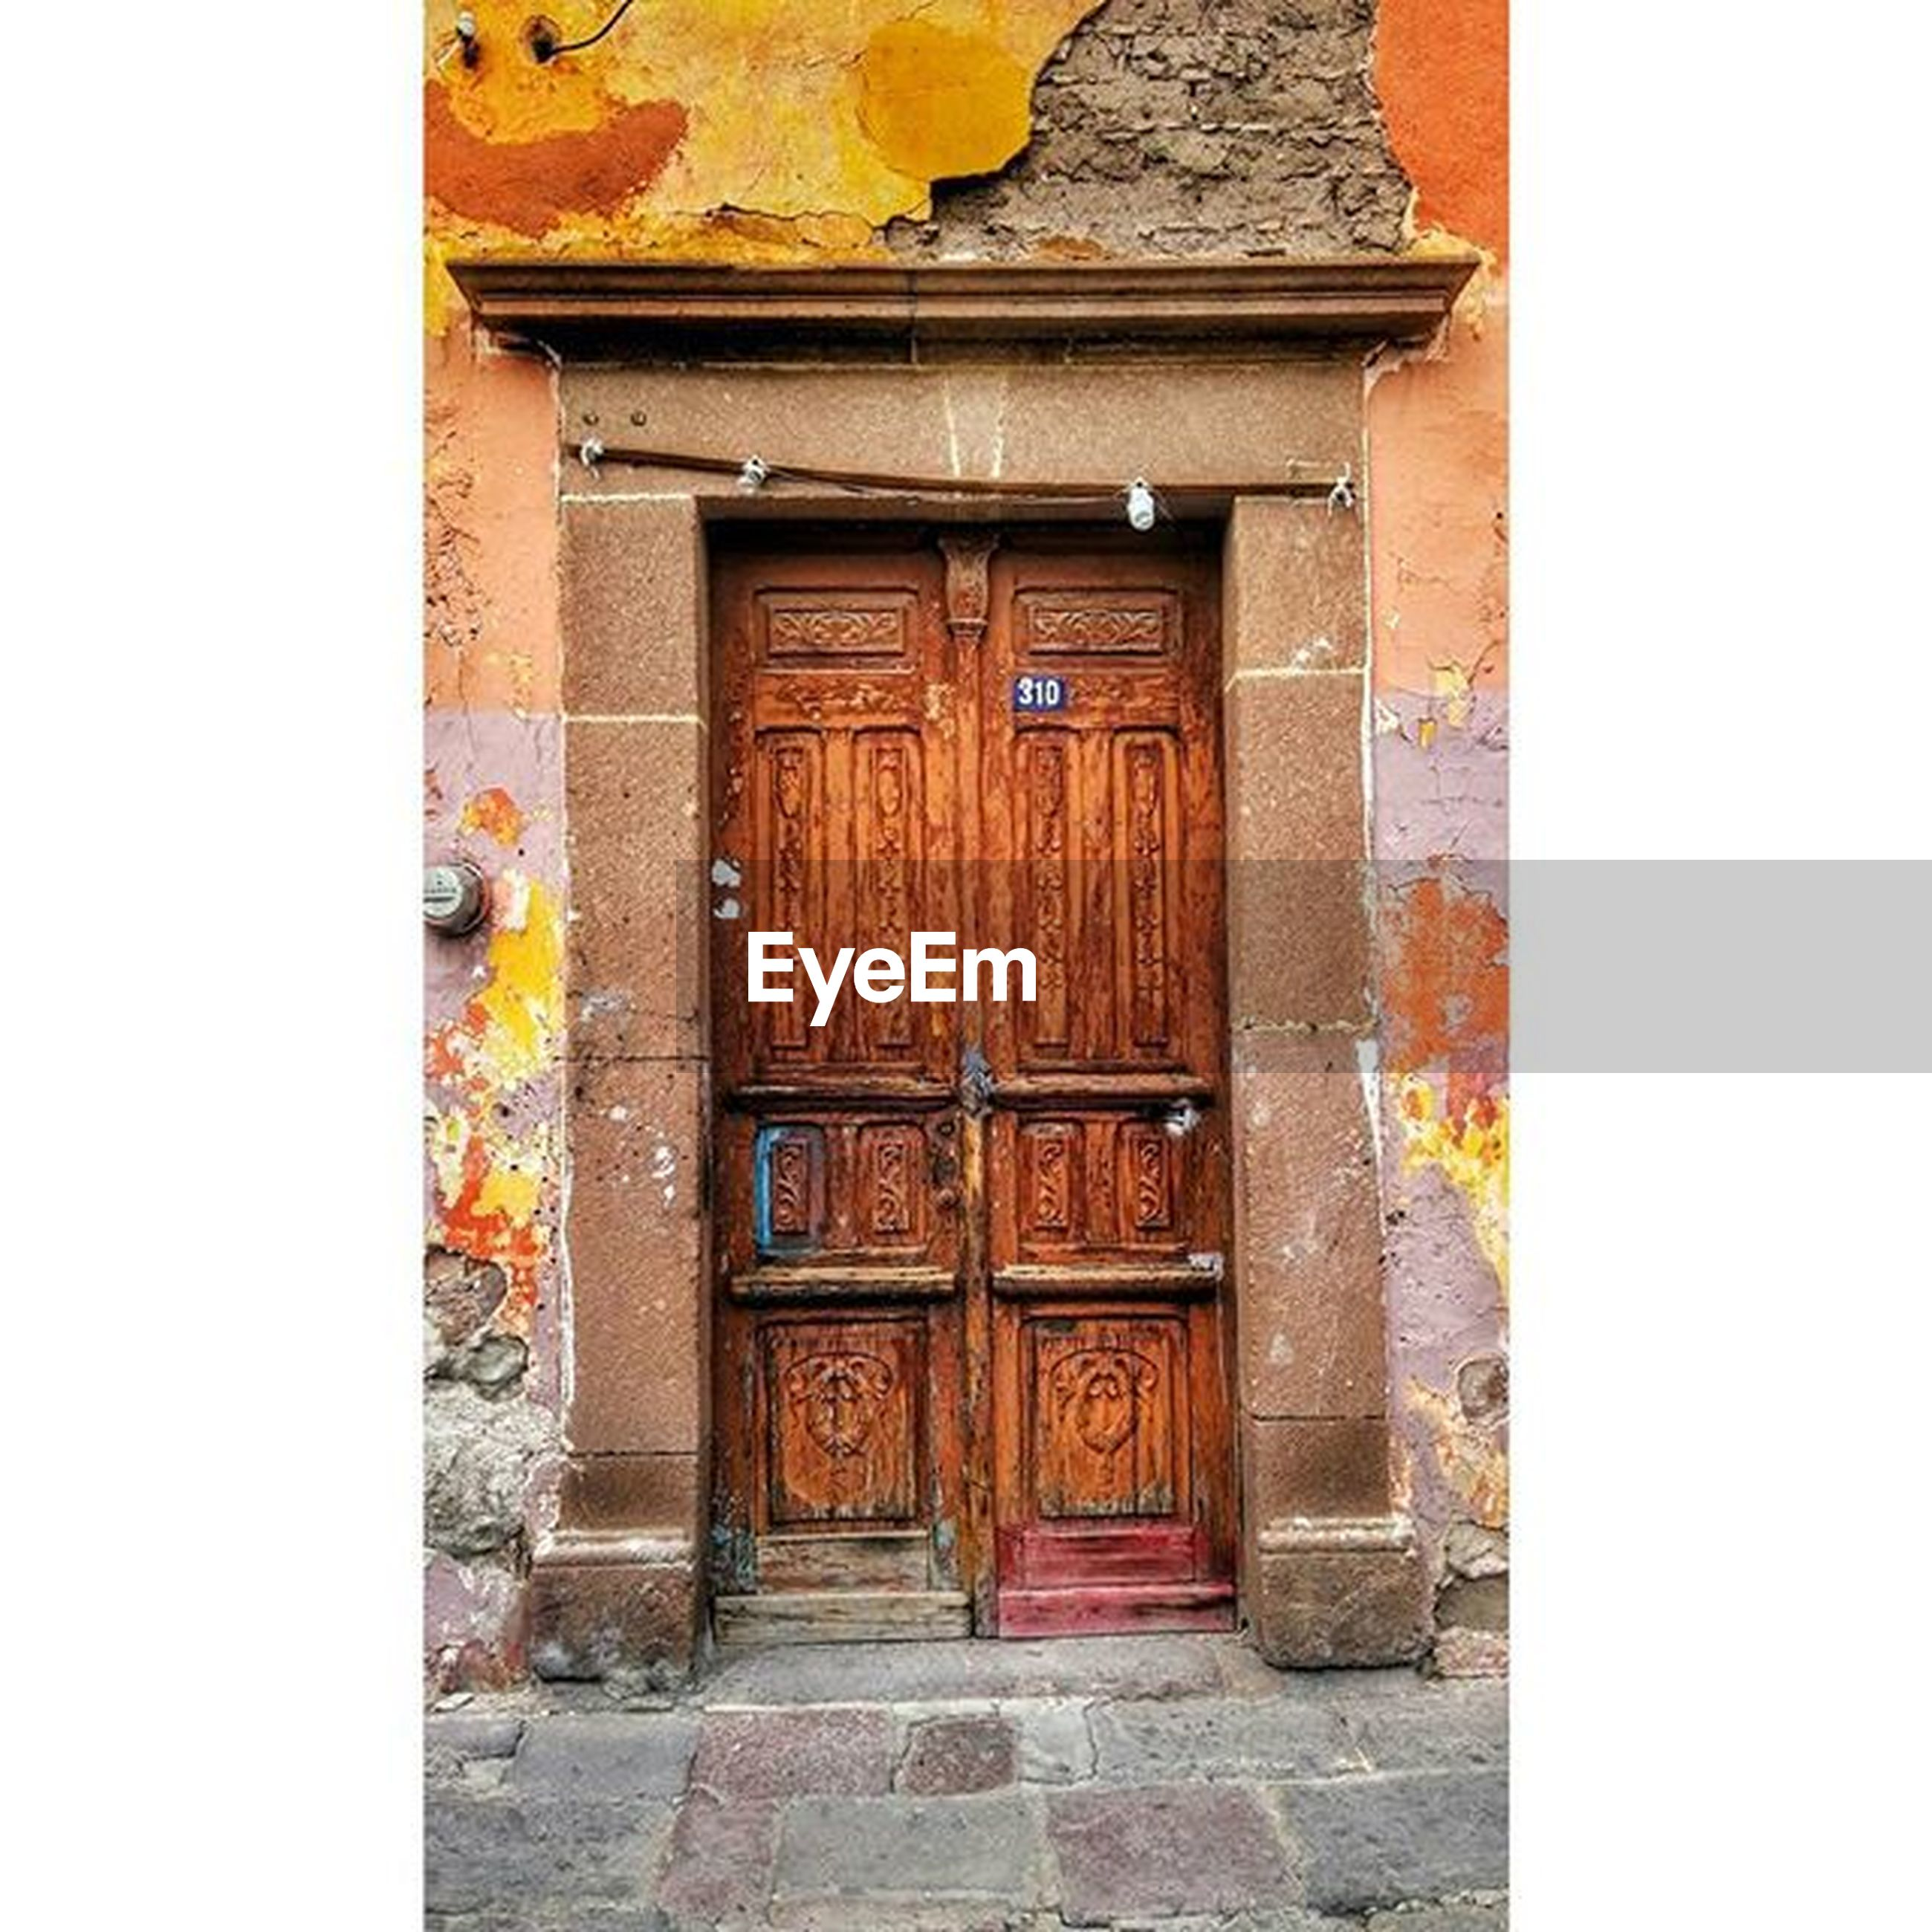 architecture, built structure, building exterior, door, entrance, house, transfer print, closed, wood - material, auto post production filter, residential structure, old, steps, doorway, wall - building feature, outdoors, day, building, window, no people